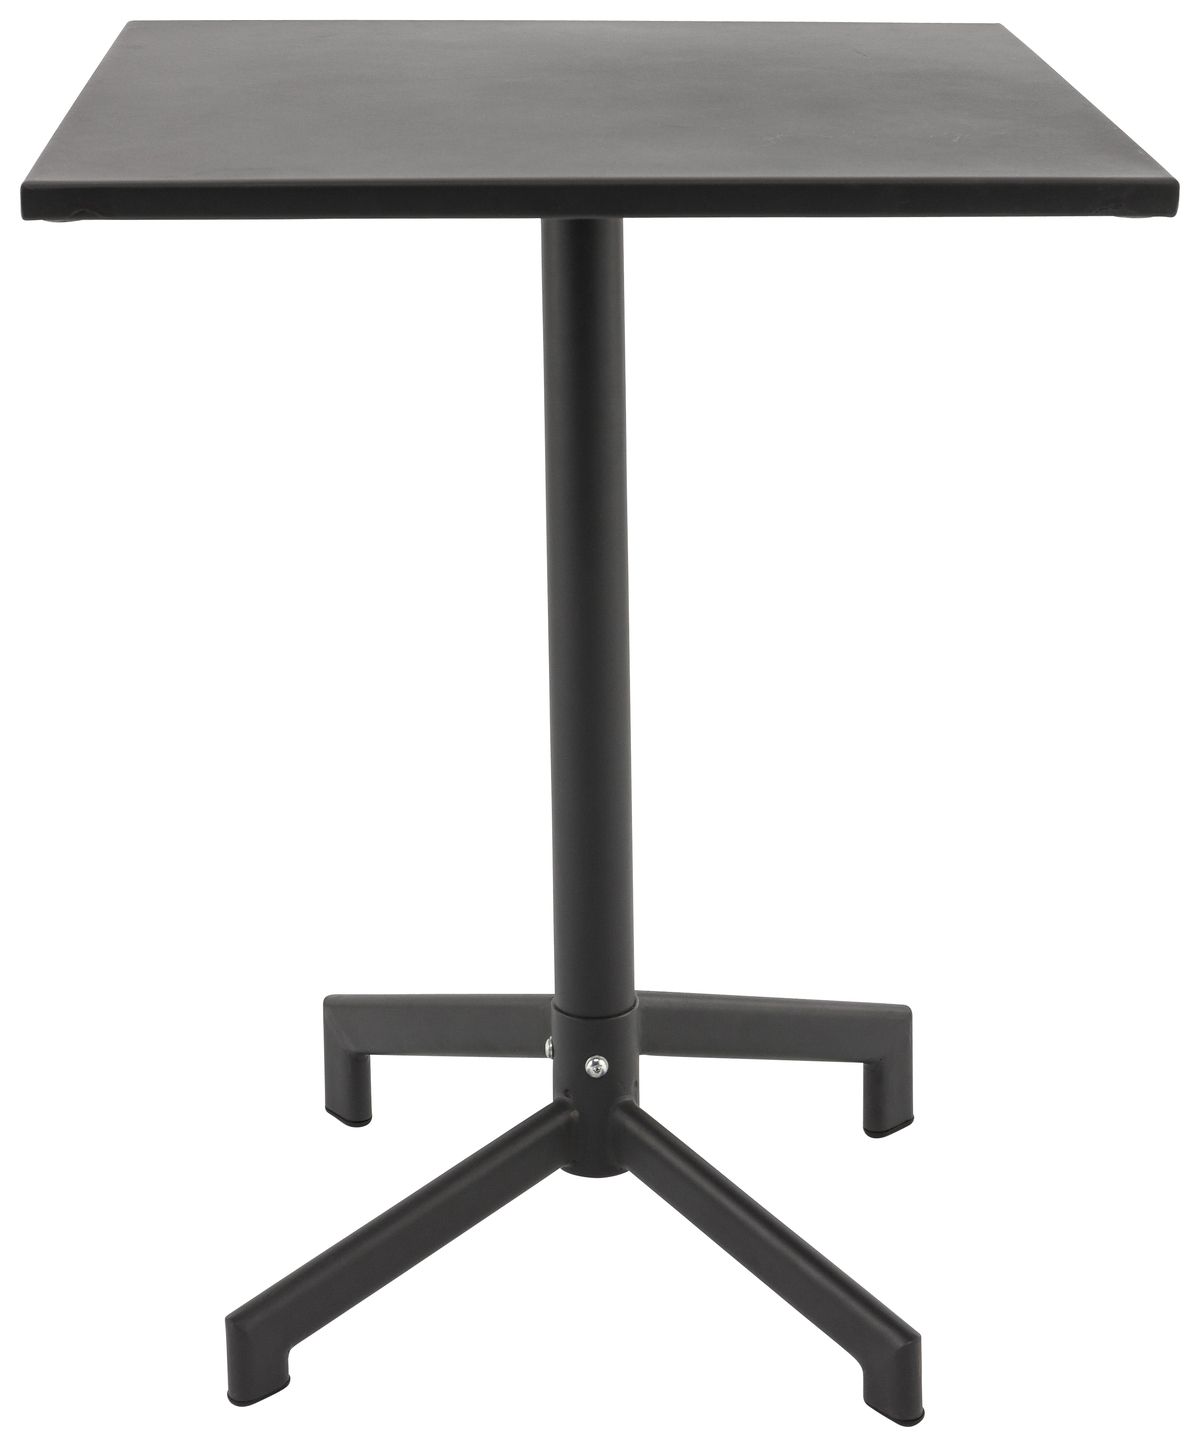 Table gris anthracite 60x60 cm Pigalle